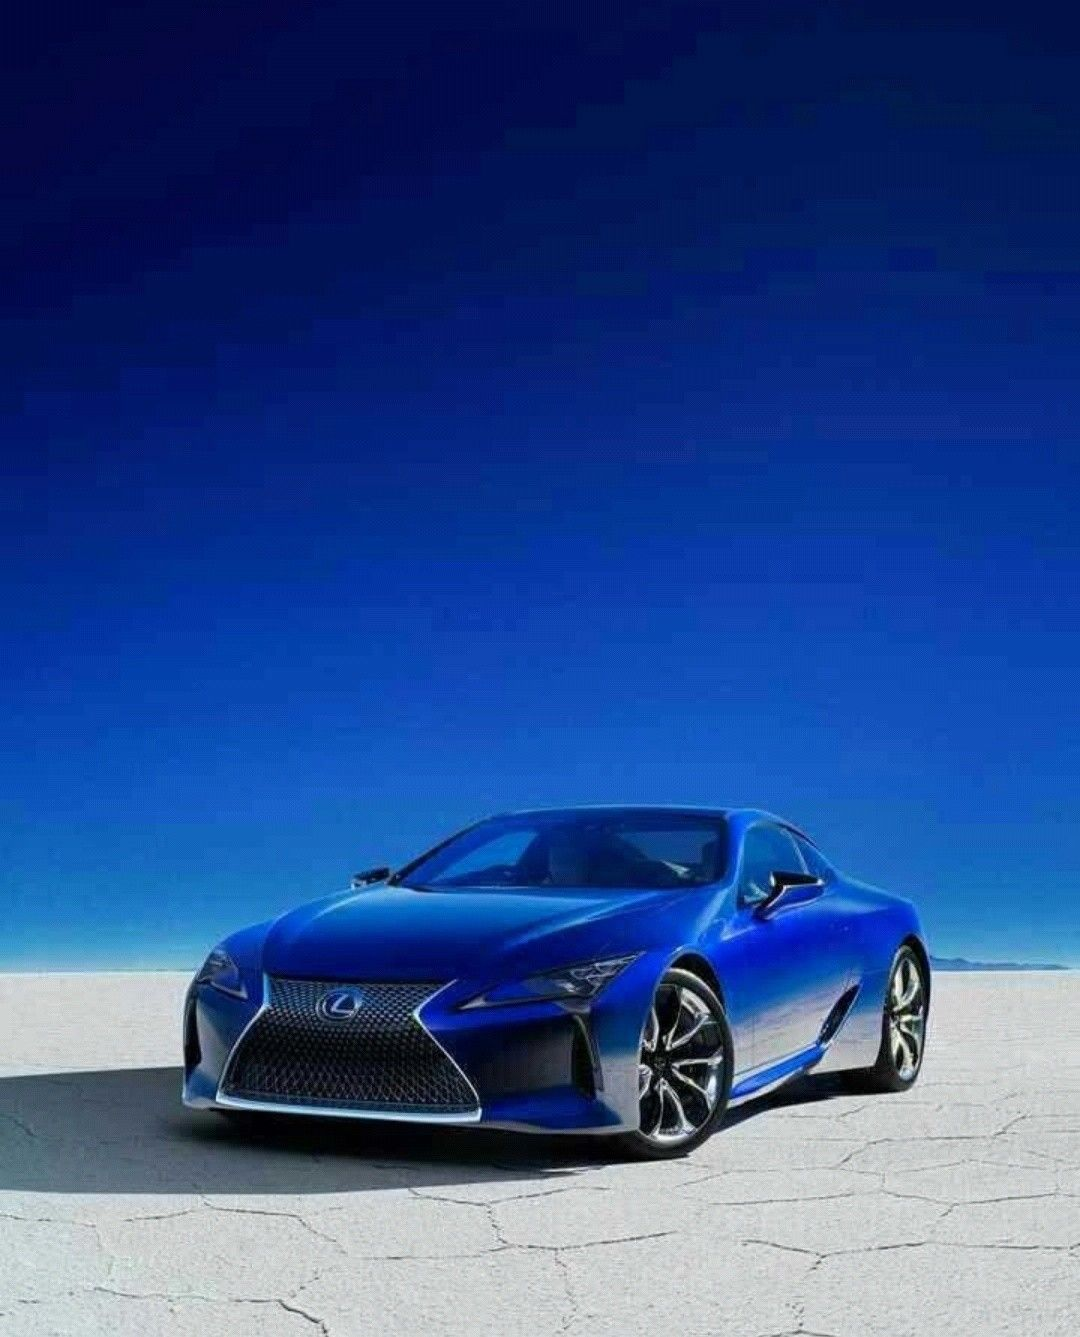 Pin by AKHTER SULTANA on سواریاں Lexus lc, Car